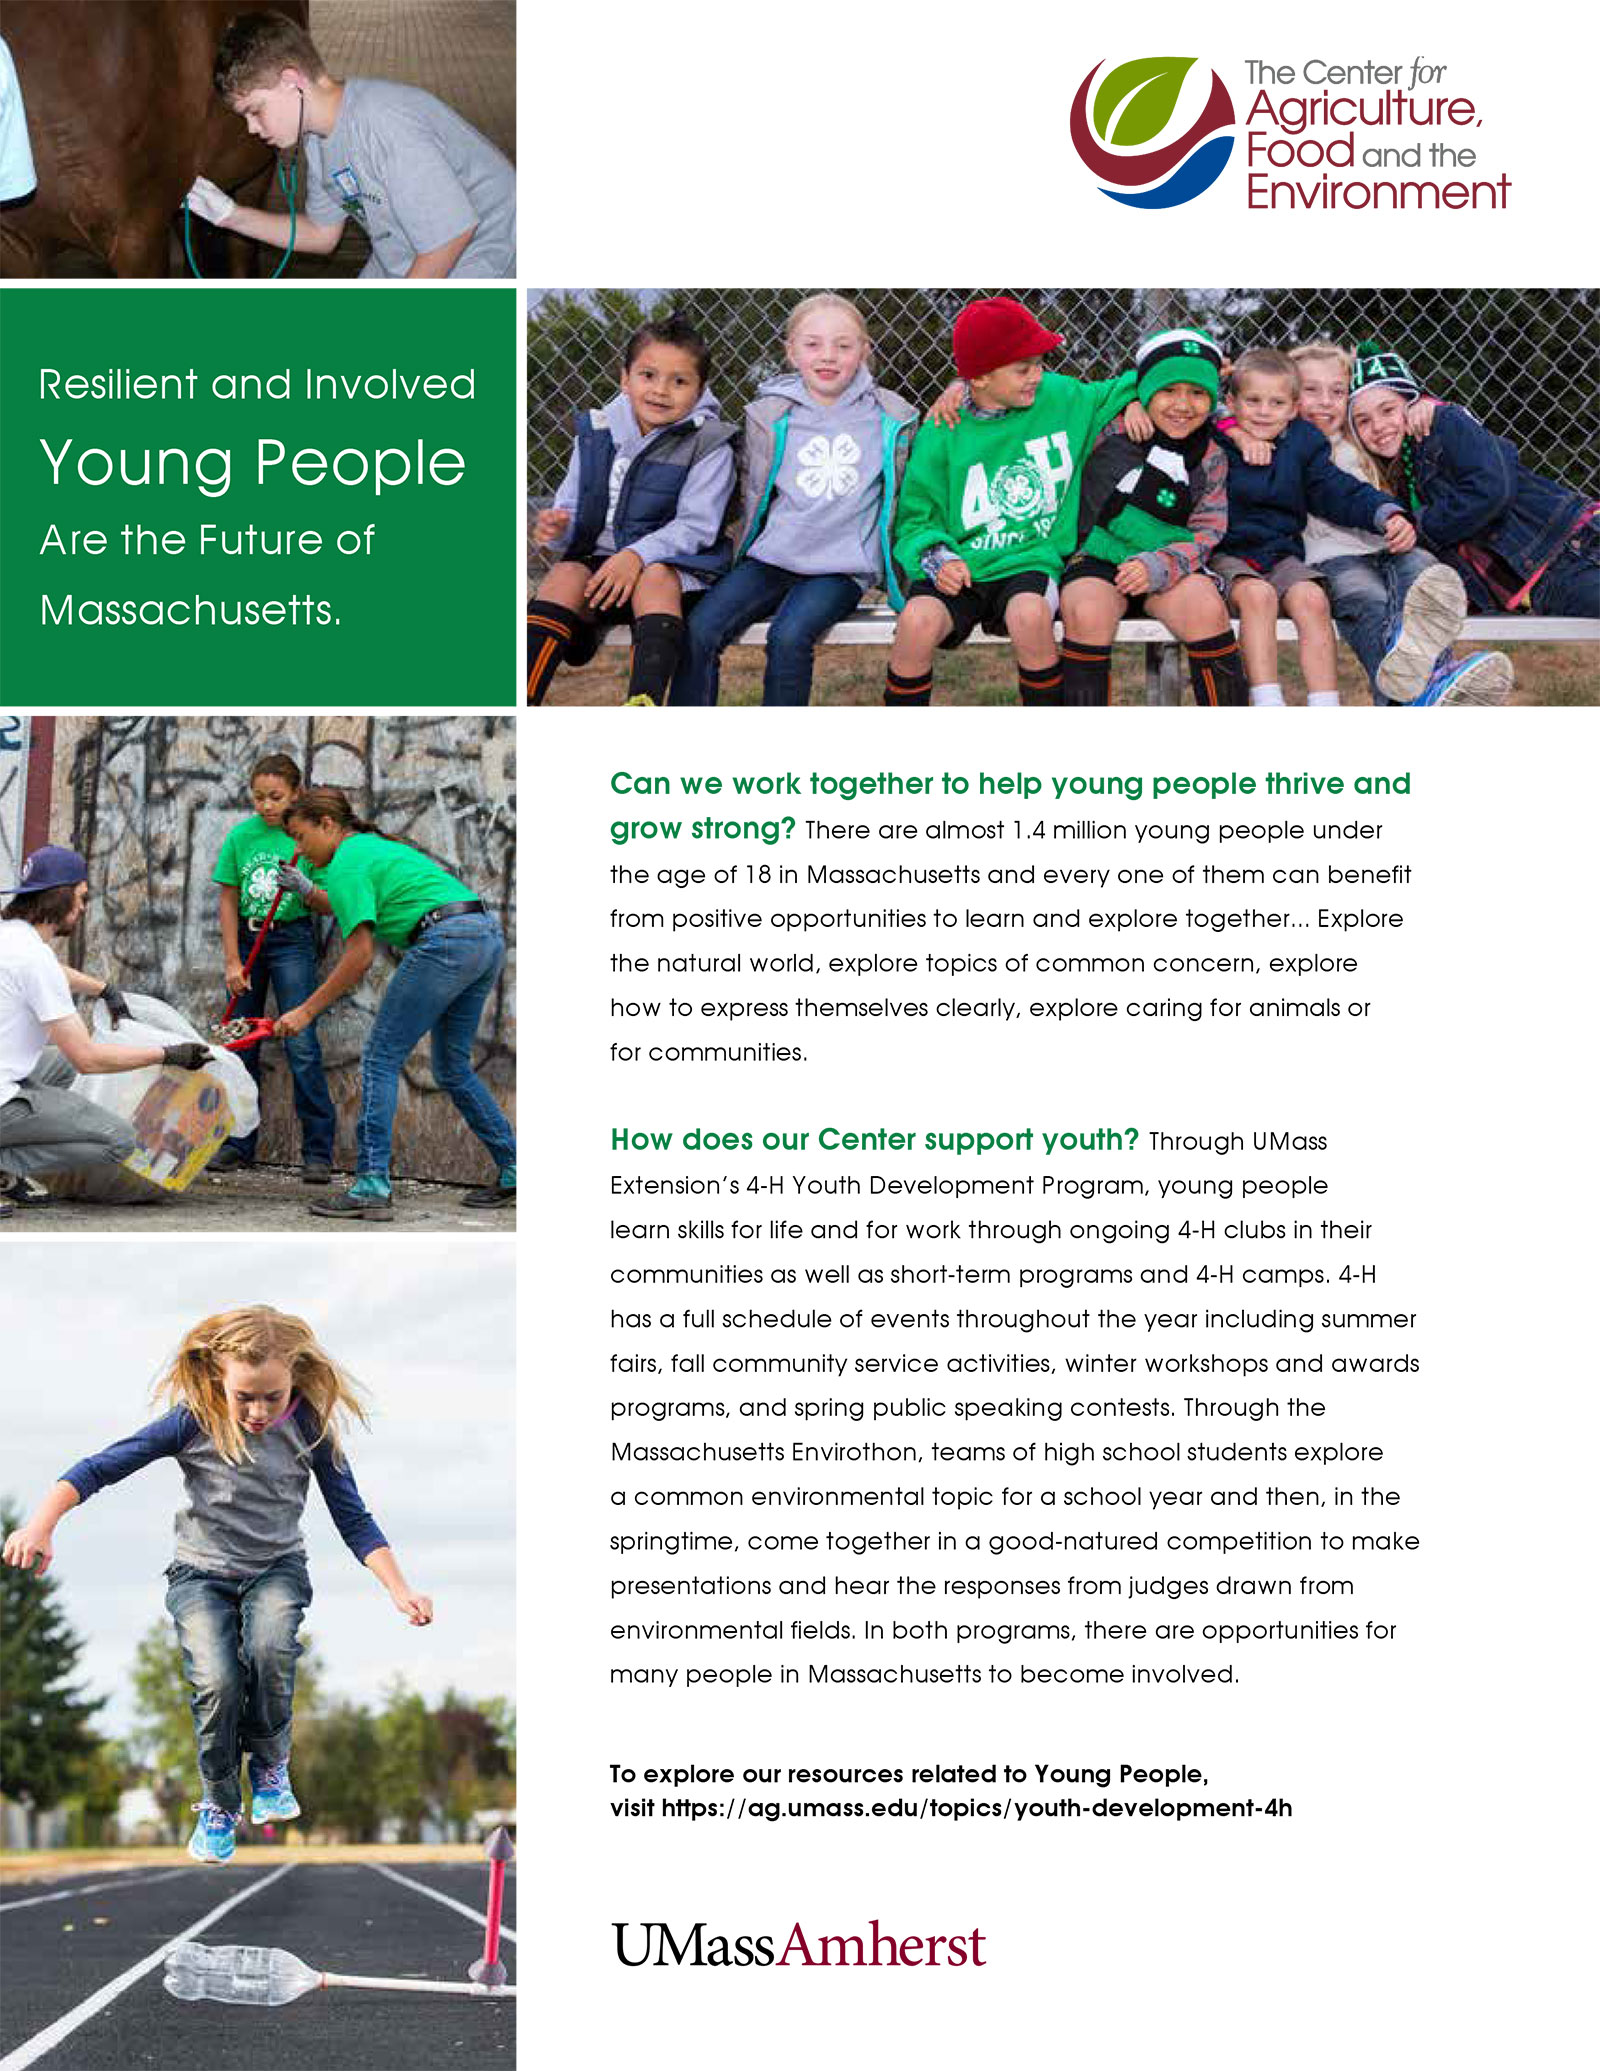 Youth Development and 4-H insert for CAFE promotional material